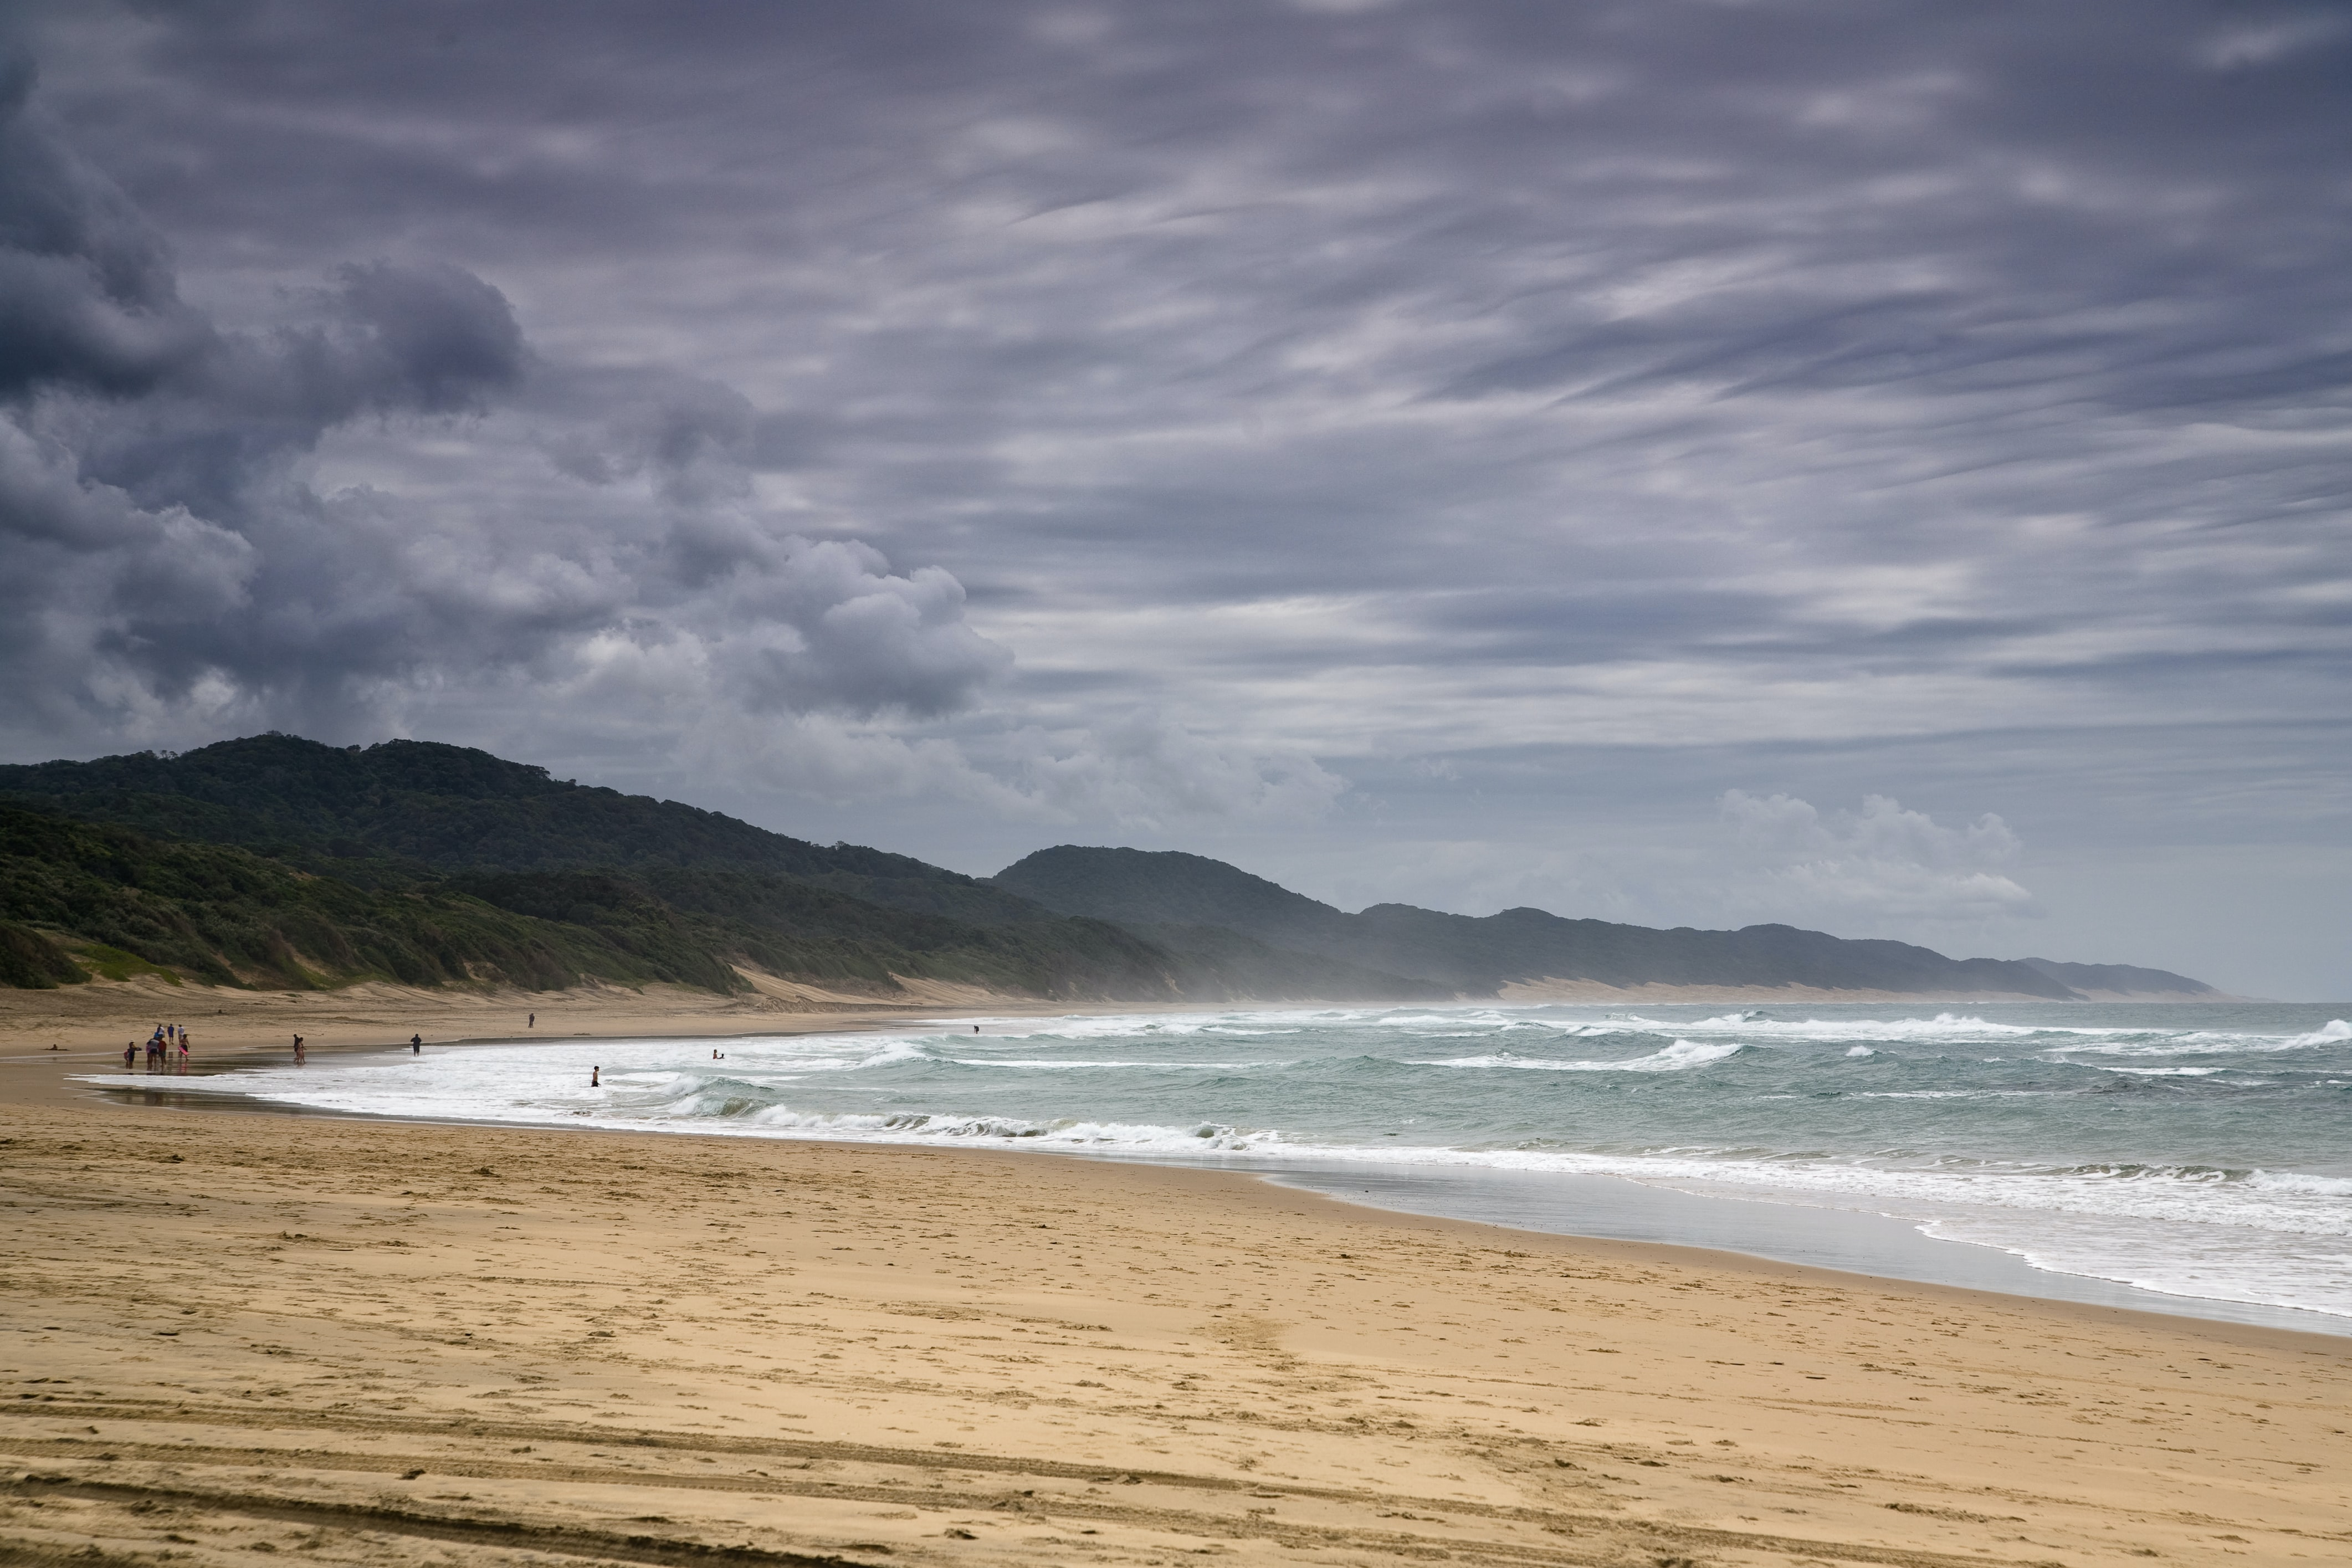 coastline, stormy waters, ocean shore and mountains forge a beautiful beach view.